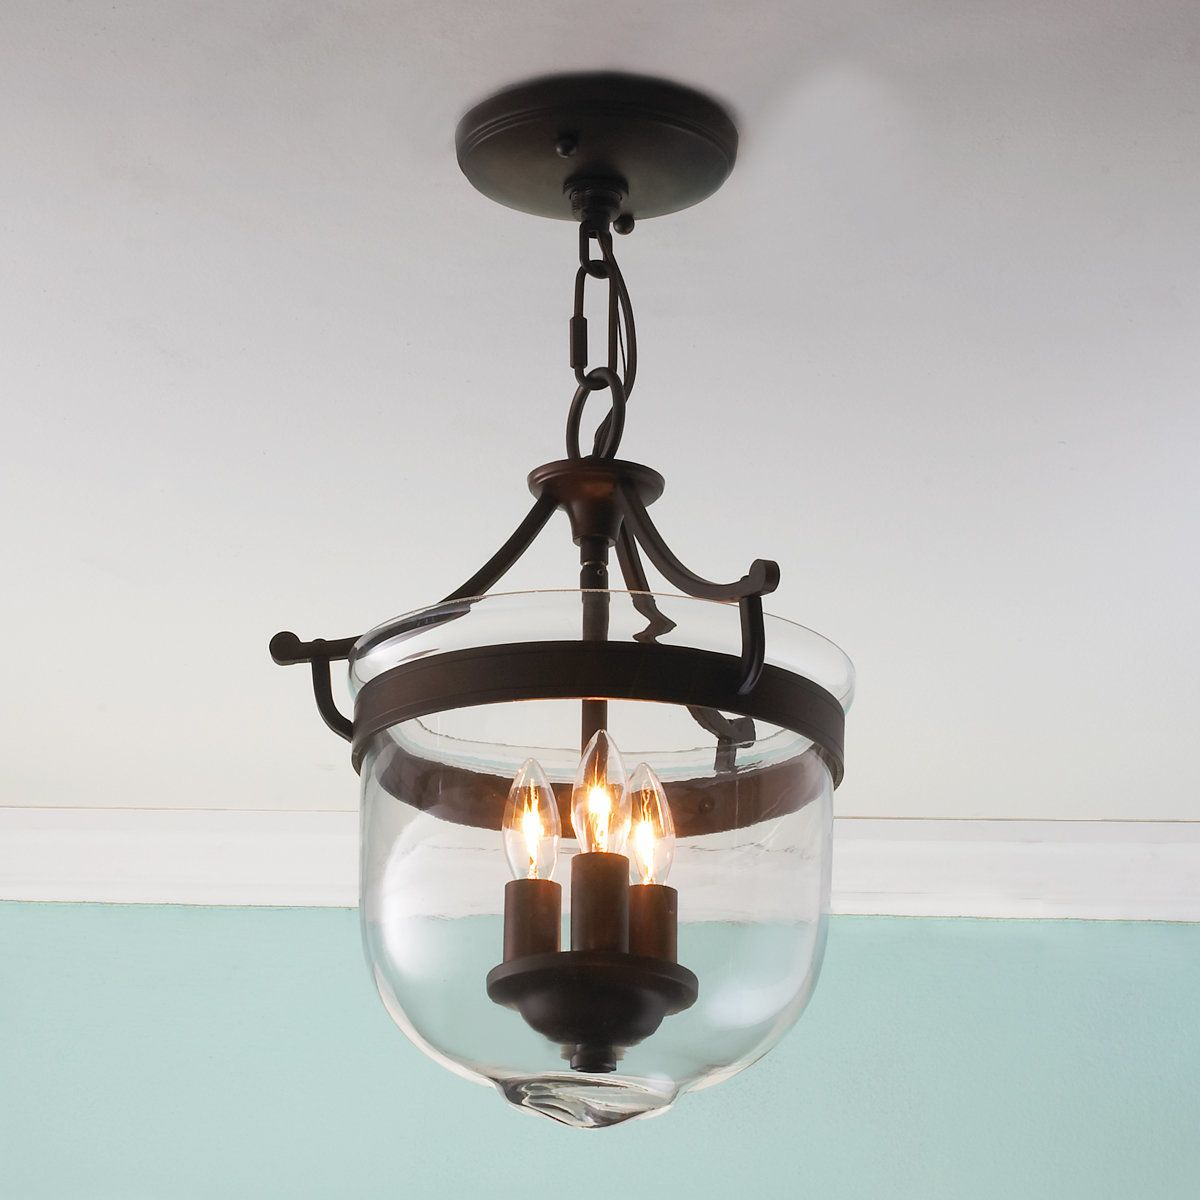 Mini Smokebell Semi Flush Ceiling Light | Foyer In 2019 With Regard To Alayna 4 Light Shaded Chandeliers (Image 23 of 30)